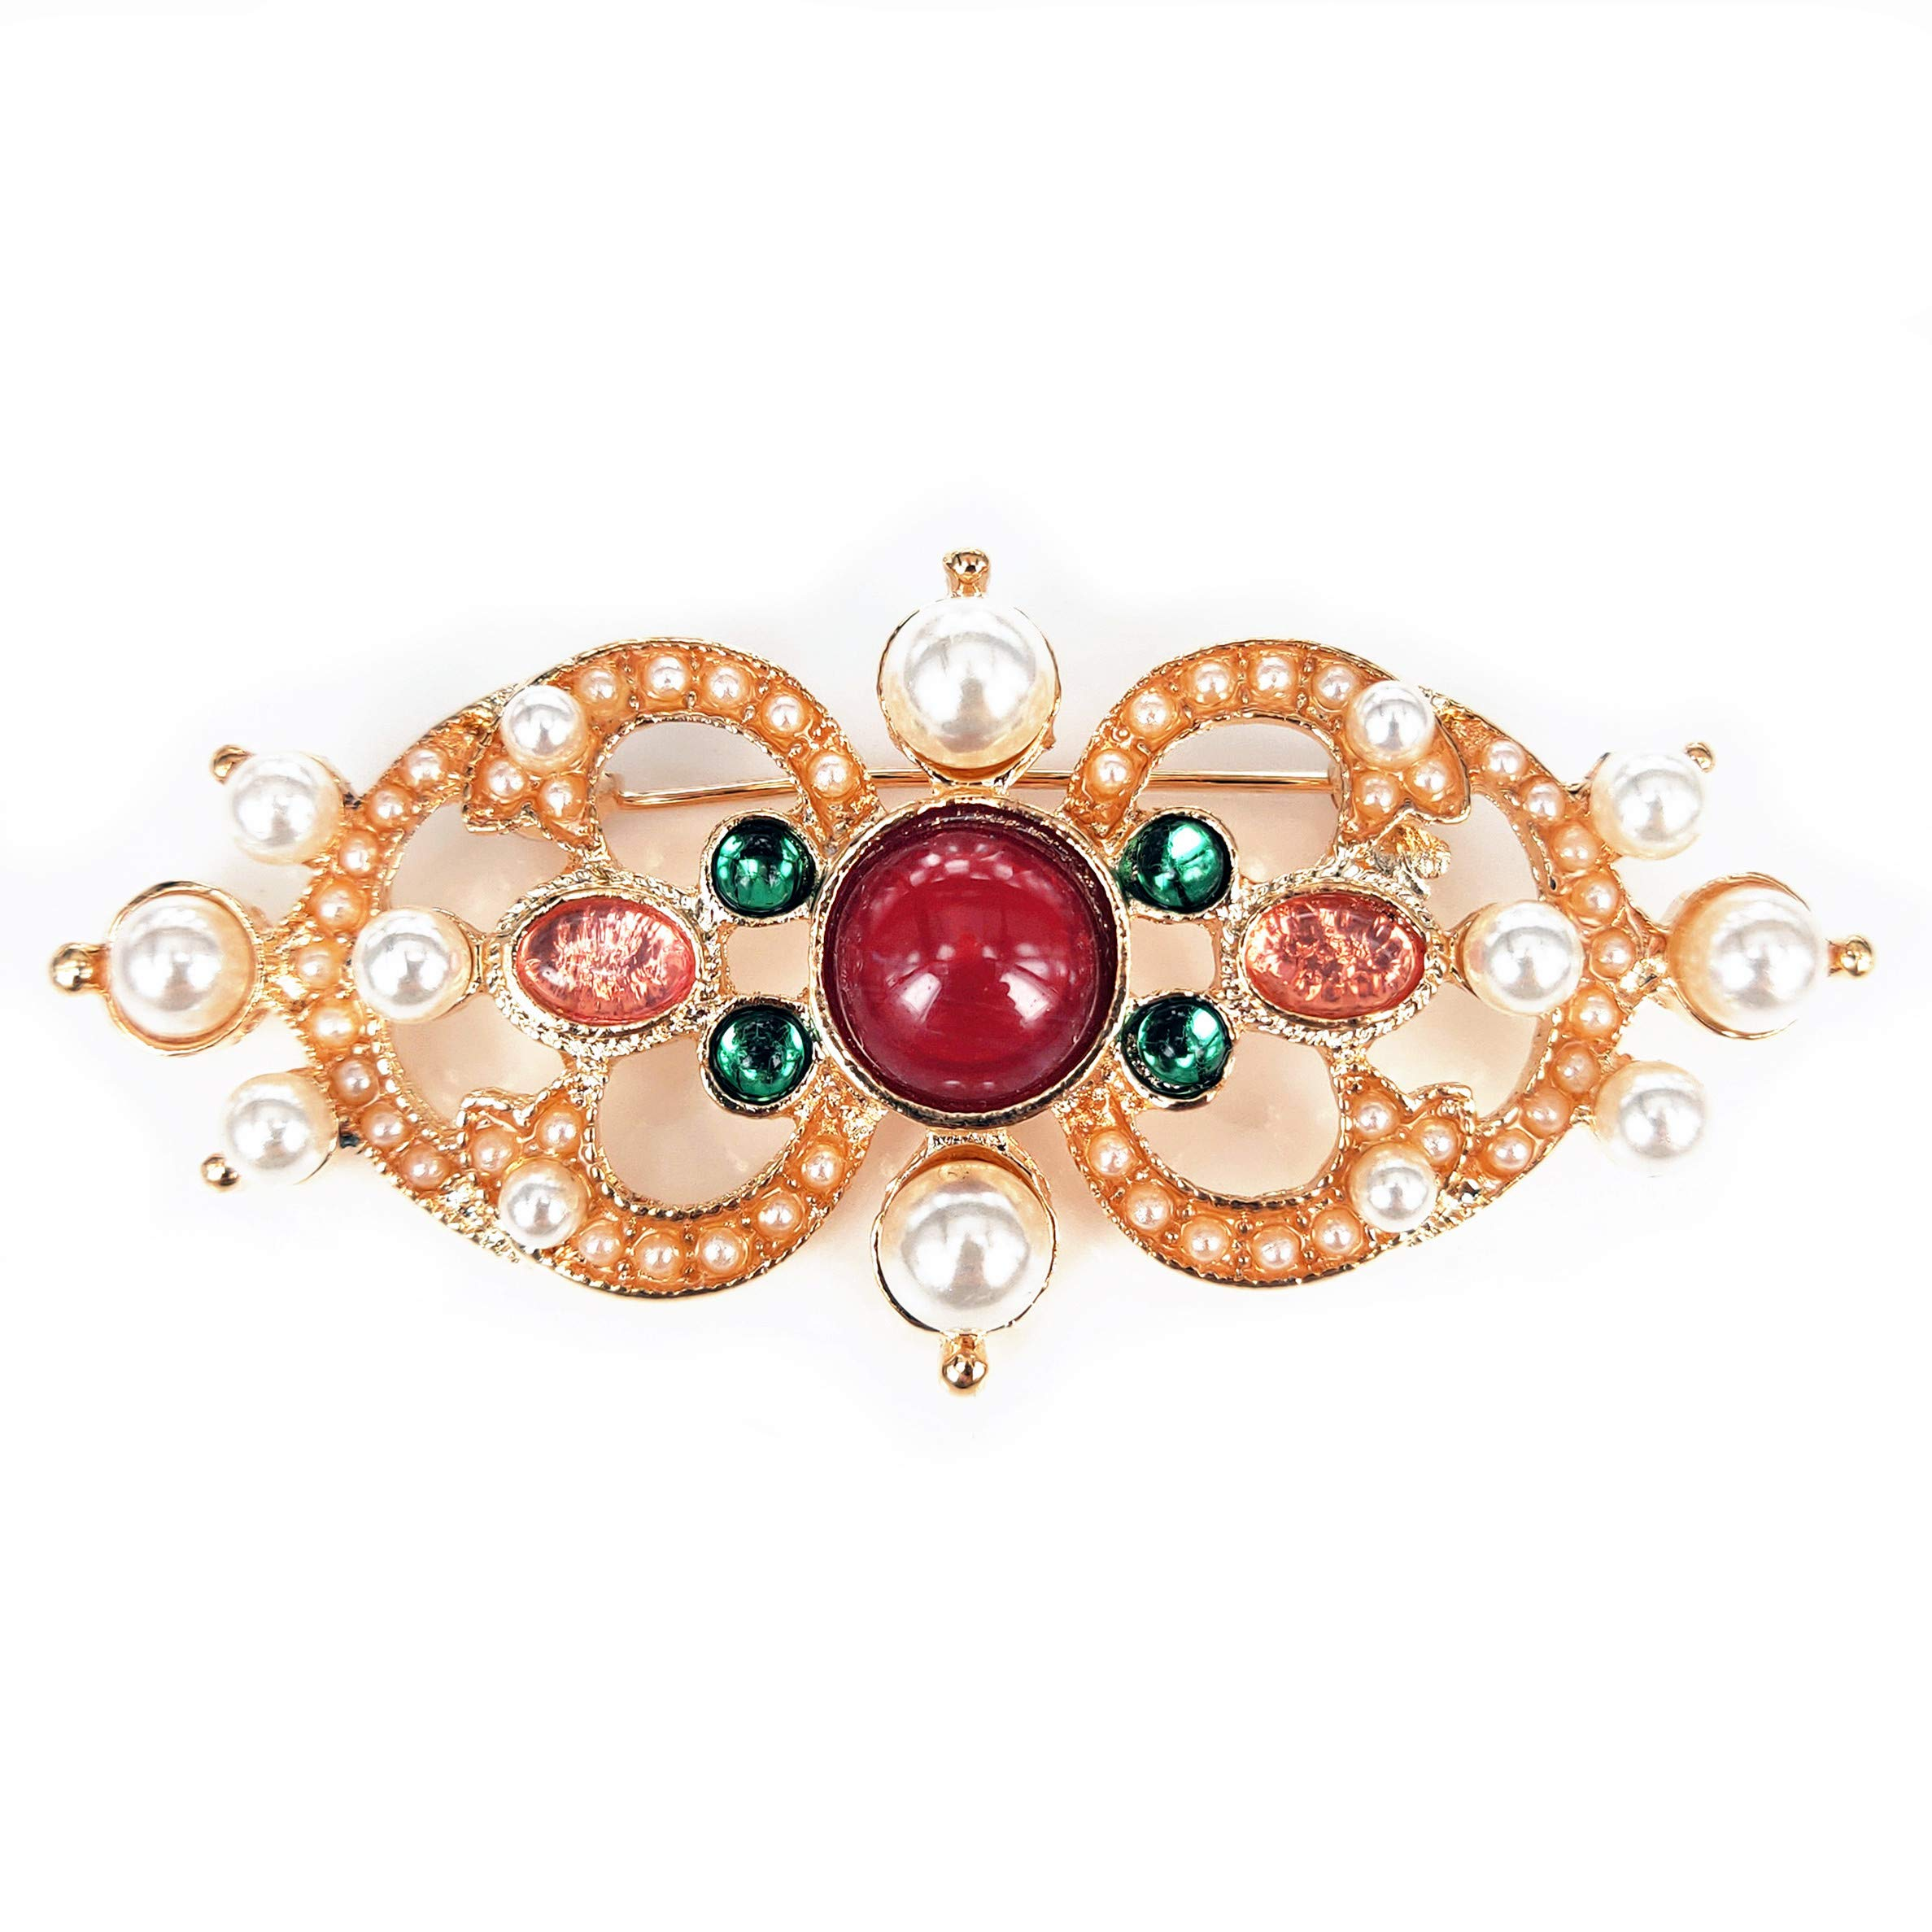 ZYJ STORE Retro Crowns and brooches are Suitable for a Variety of Costumes and Accessories